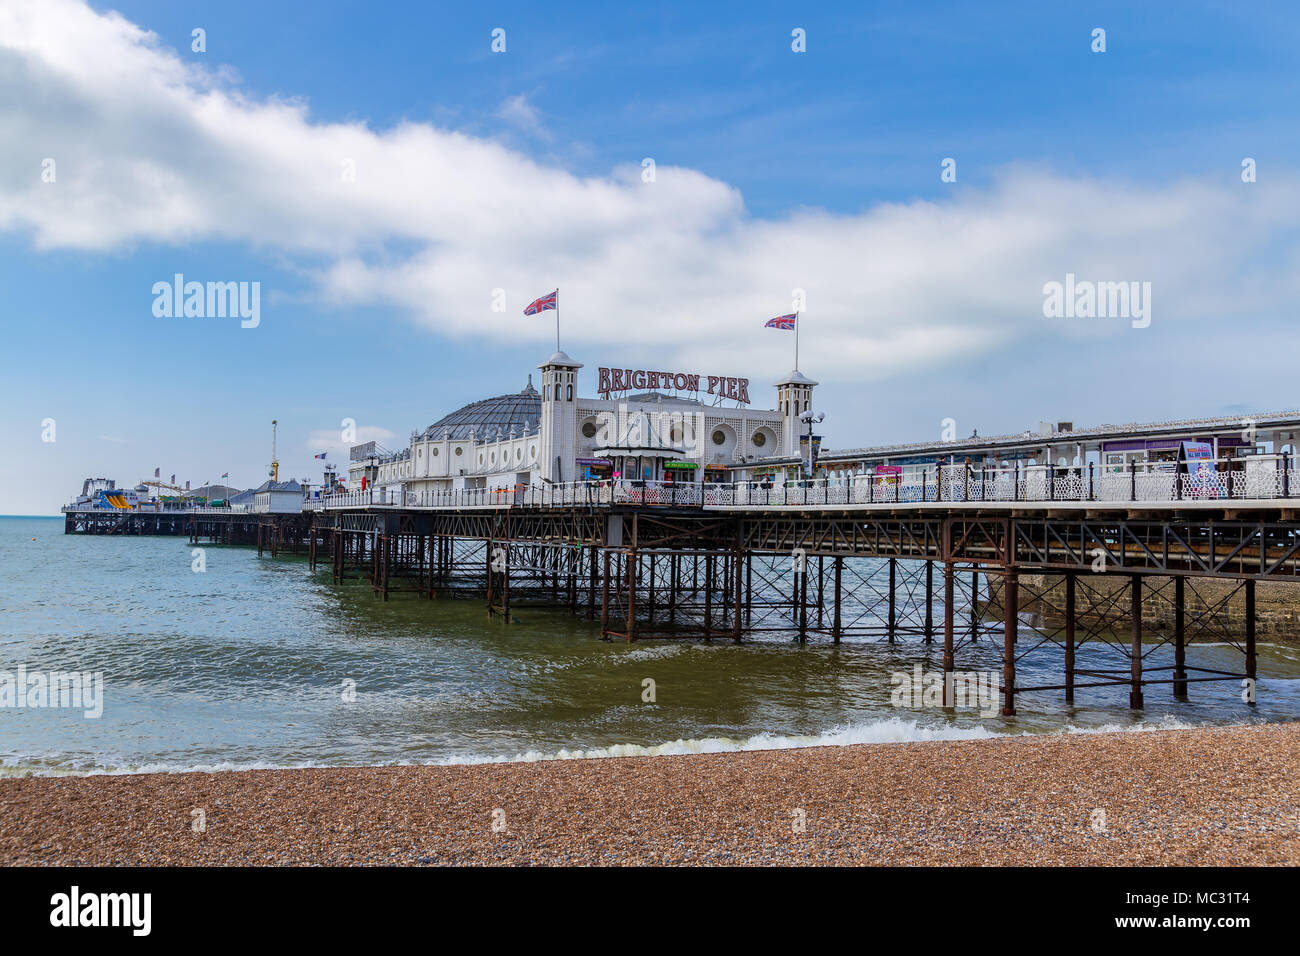 Brighton, East Sussex, England, UK - May 19, 2016: Clouds over the Brighton Pier - Stock Image